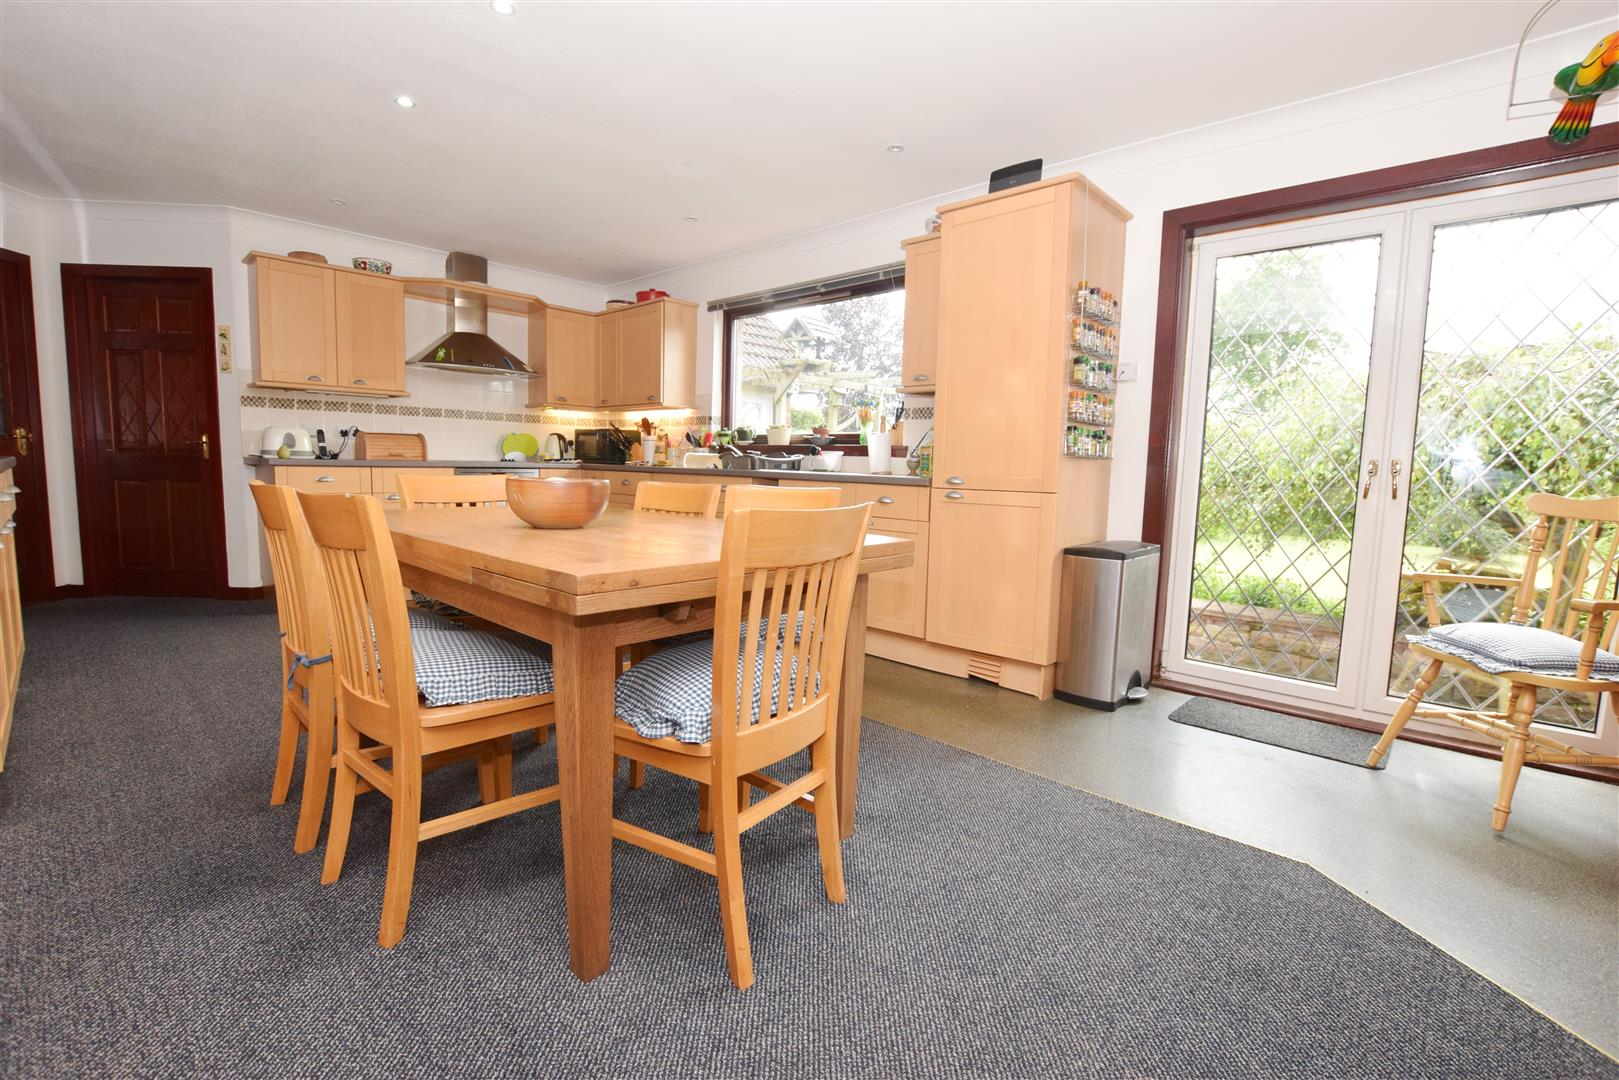 The Beeches, East Hill Road, Northmuir, Dundee, Angus, DD8 4PQ, UK